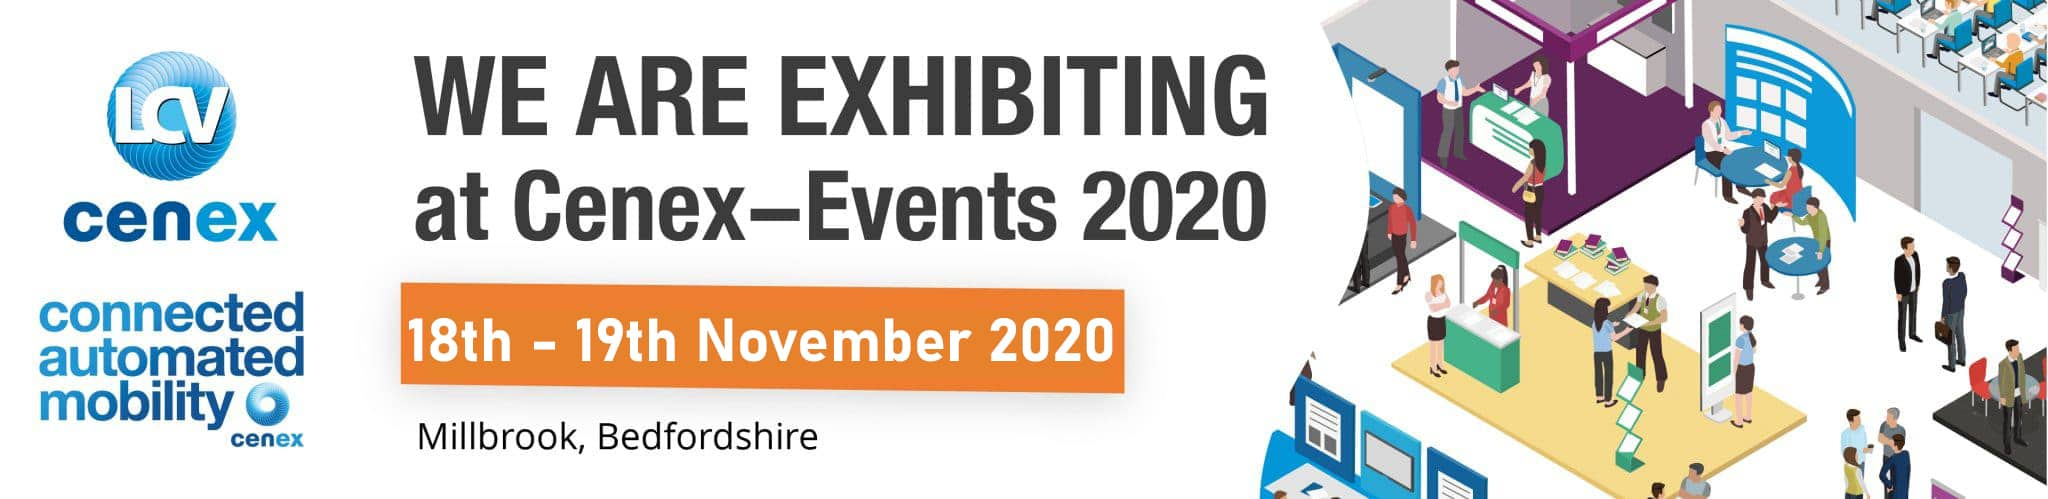 Cenex 2020, 18 - 19 November, Millbrook, Bedfordshire